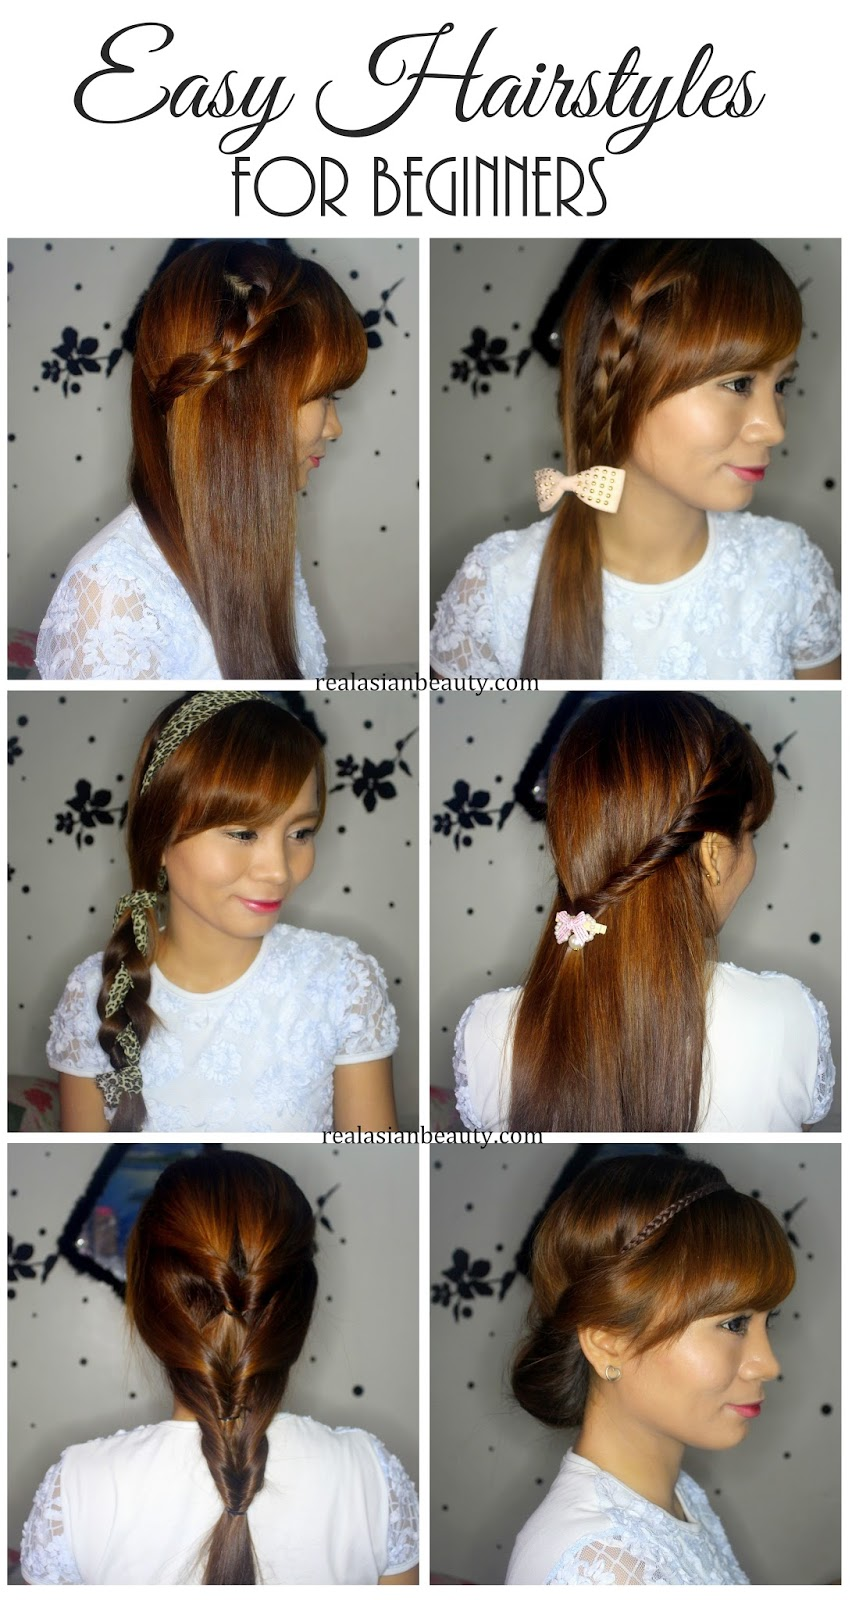 Easy Hairstyles For Beginners Beauty And Fashion